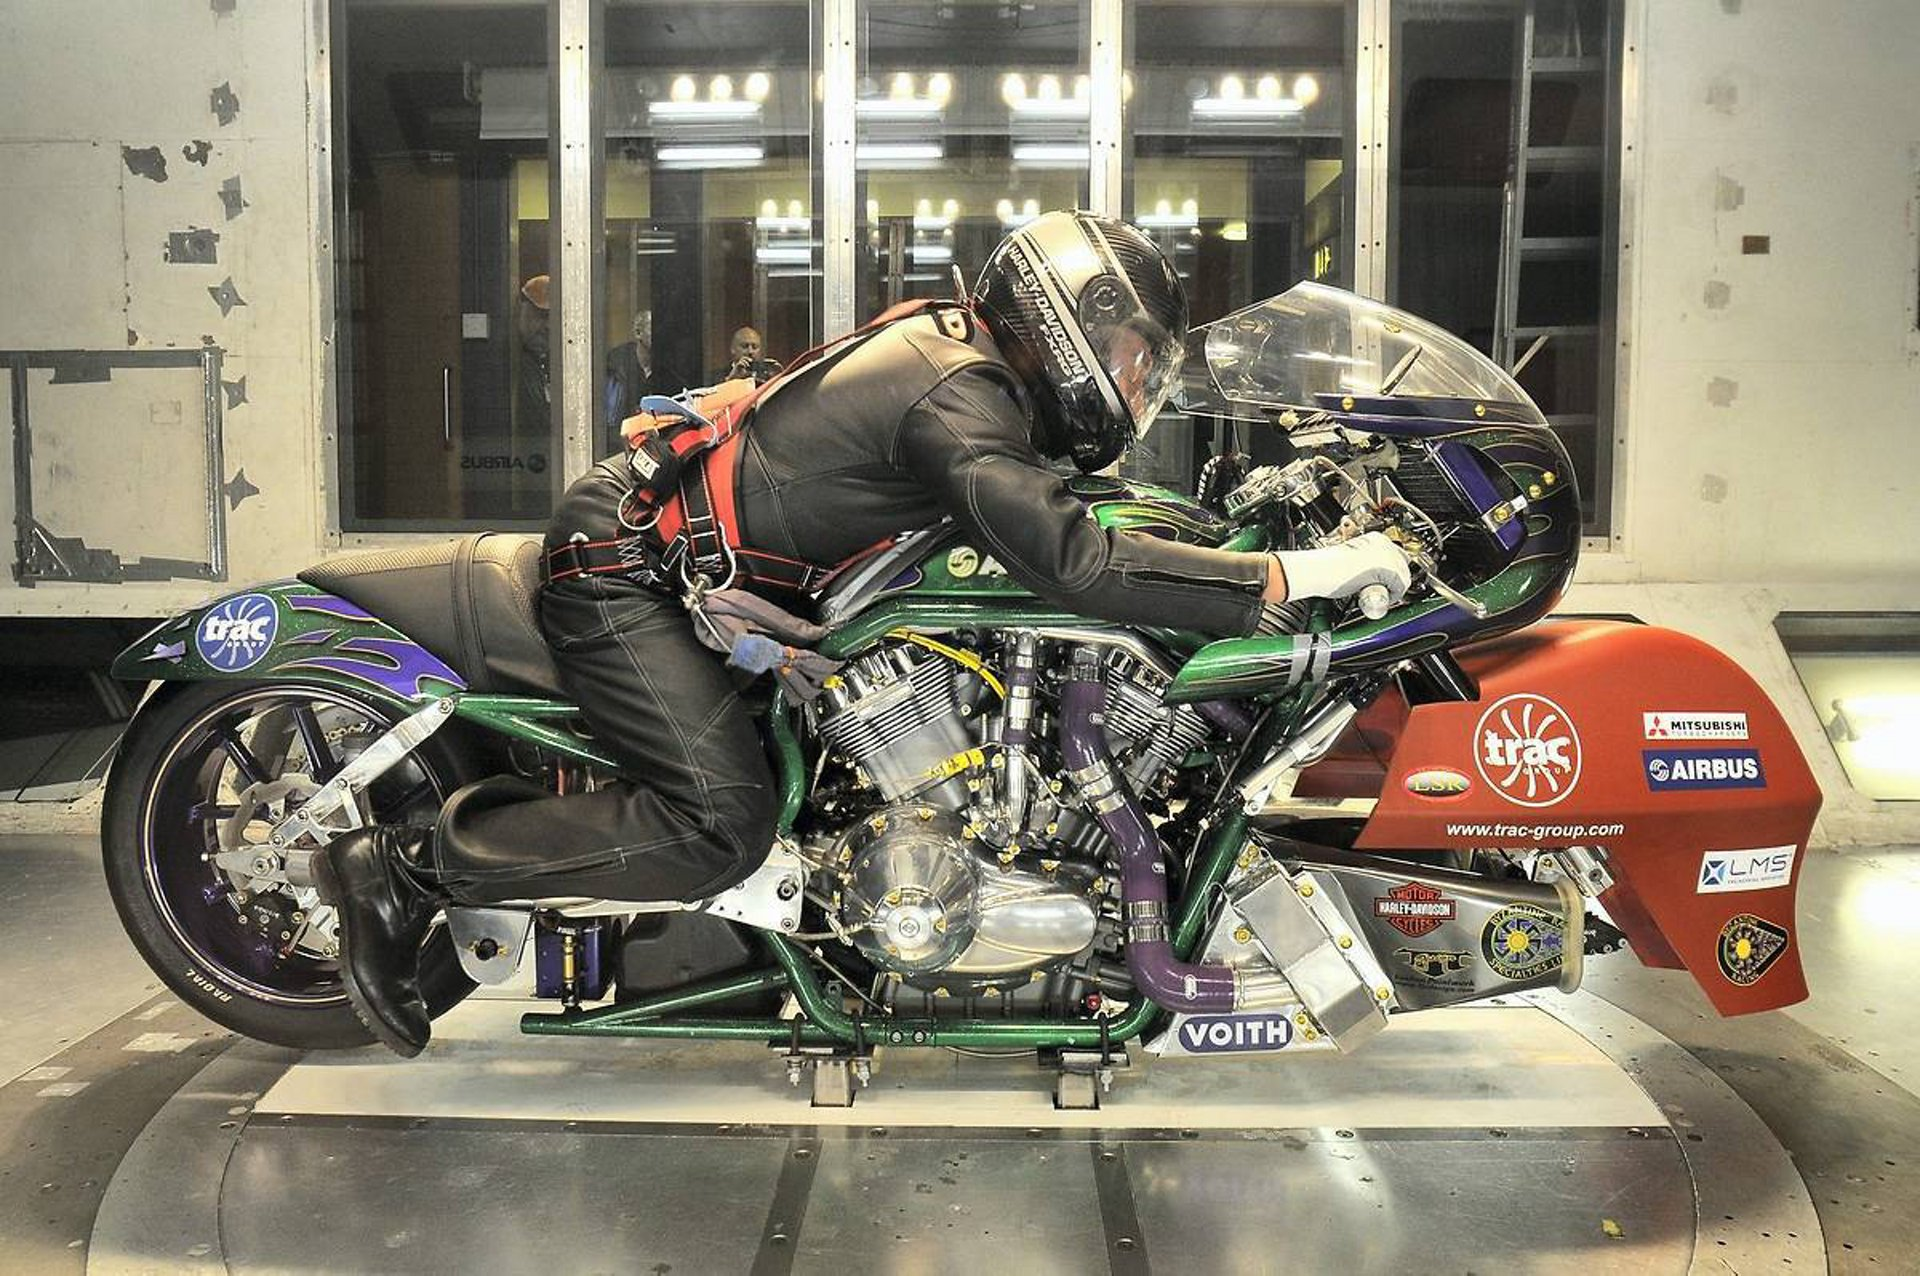 The Airbus Engineering Design & Services initiative offers the company's knowledge and skills to other industry sectors – including automotive – that can benefit from its unrivalled expertise, as illustrated by this wind tunnel evaluation of a motorcycle